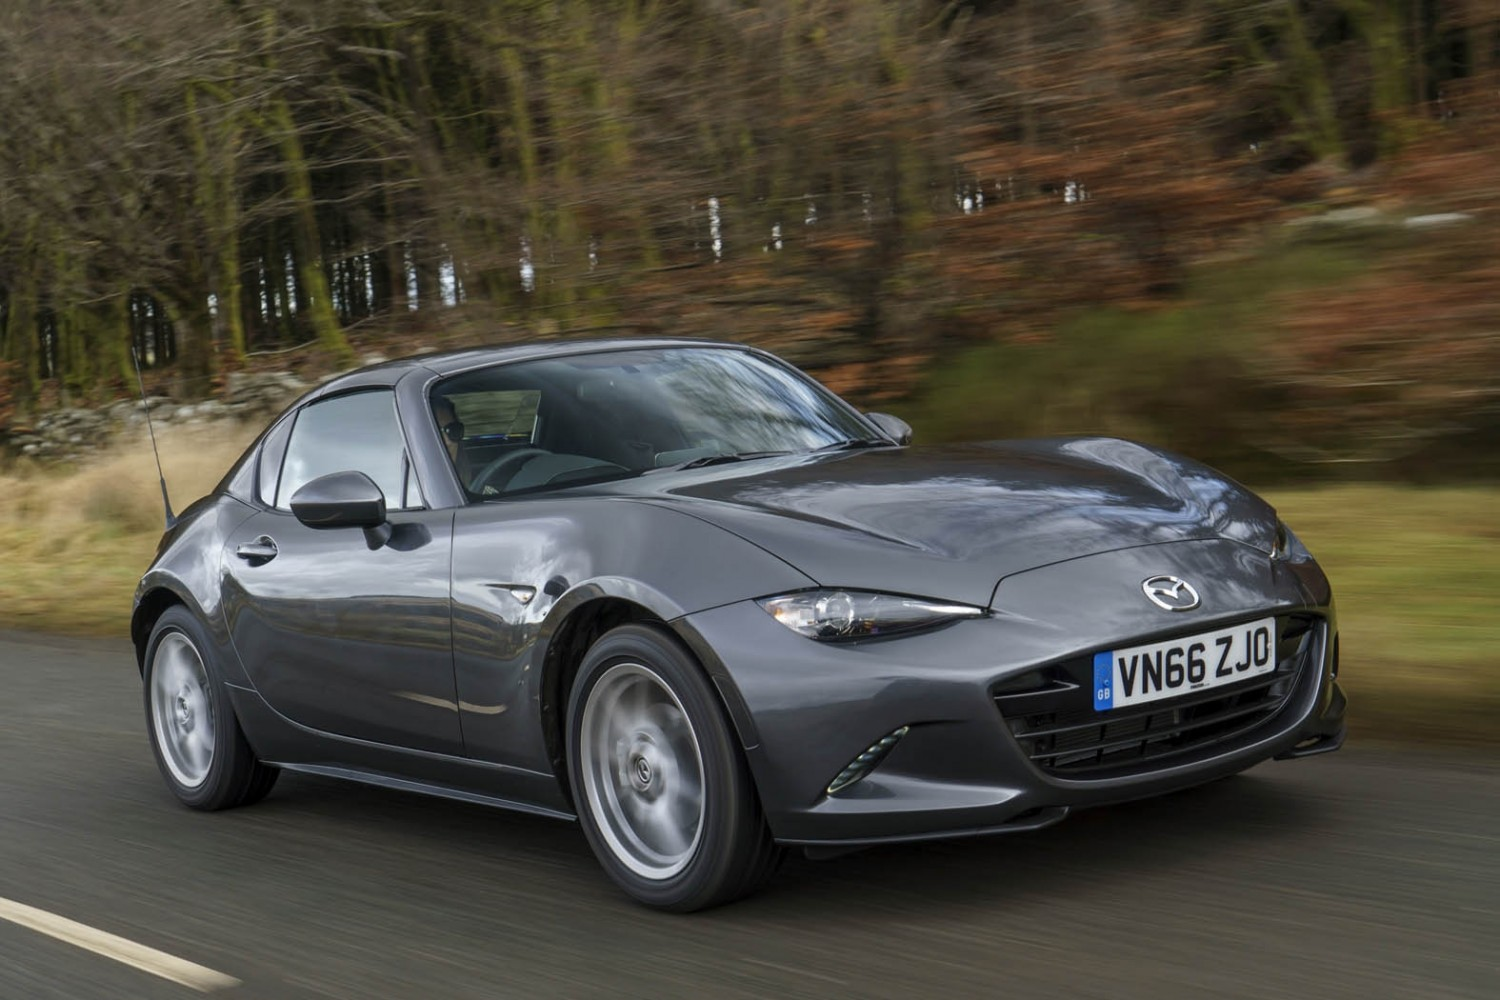 Extra Topping Adds To Mx 5 Appeal Eurekar